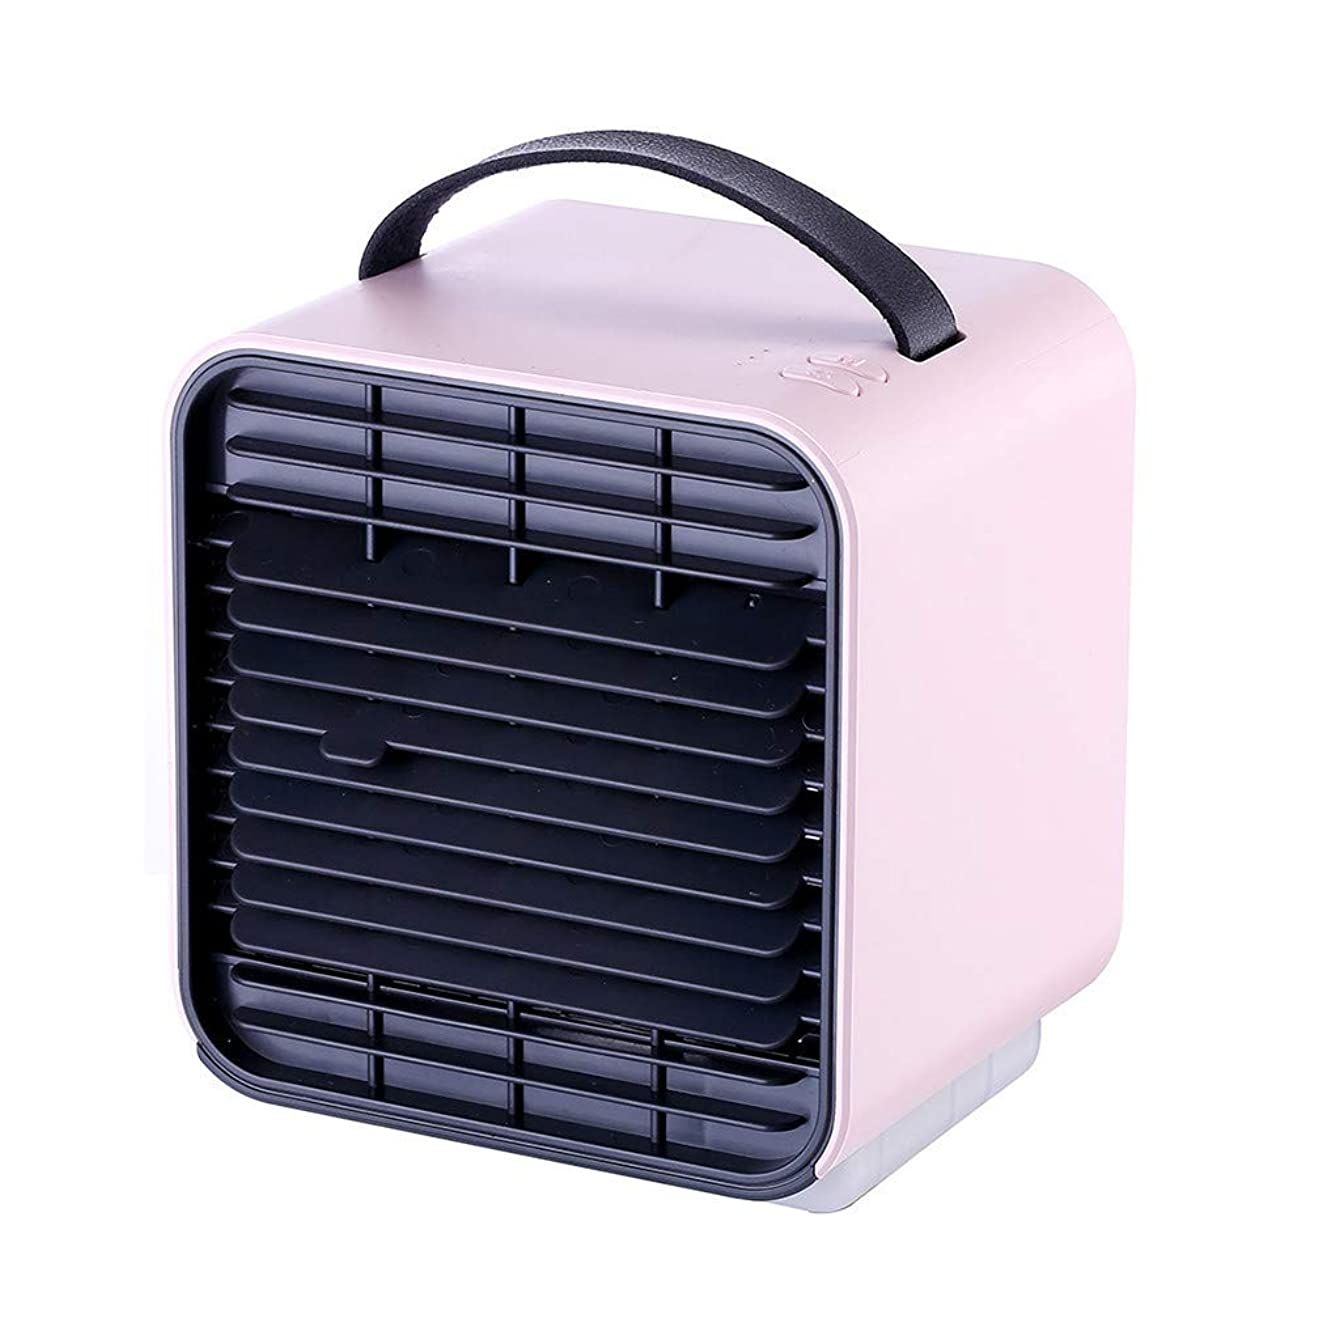 Personal Space Cooler Air Conditioner Fan, Air Personal Space Cooler Small Desktop Fan Quiet Personal Table Fan Mini Evaporative Air Circulator Cooler Humidifier Bladeless Quiet for Office, Dorm